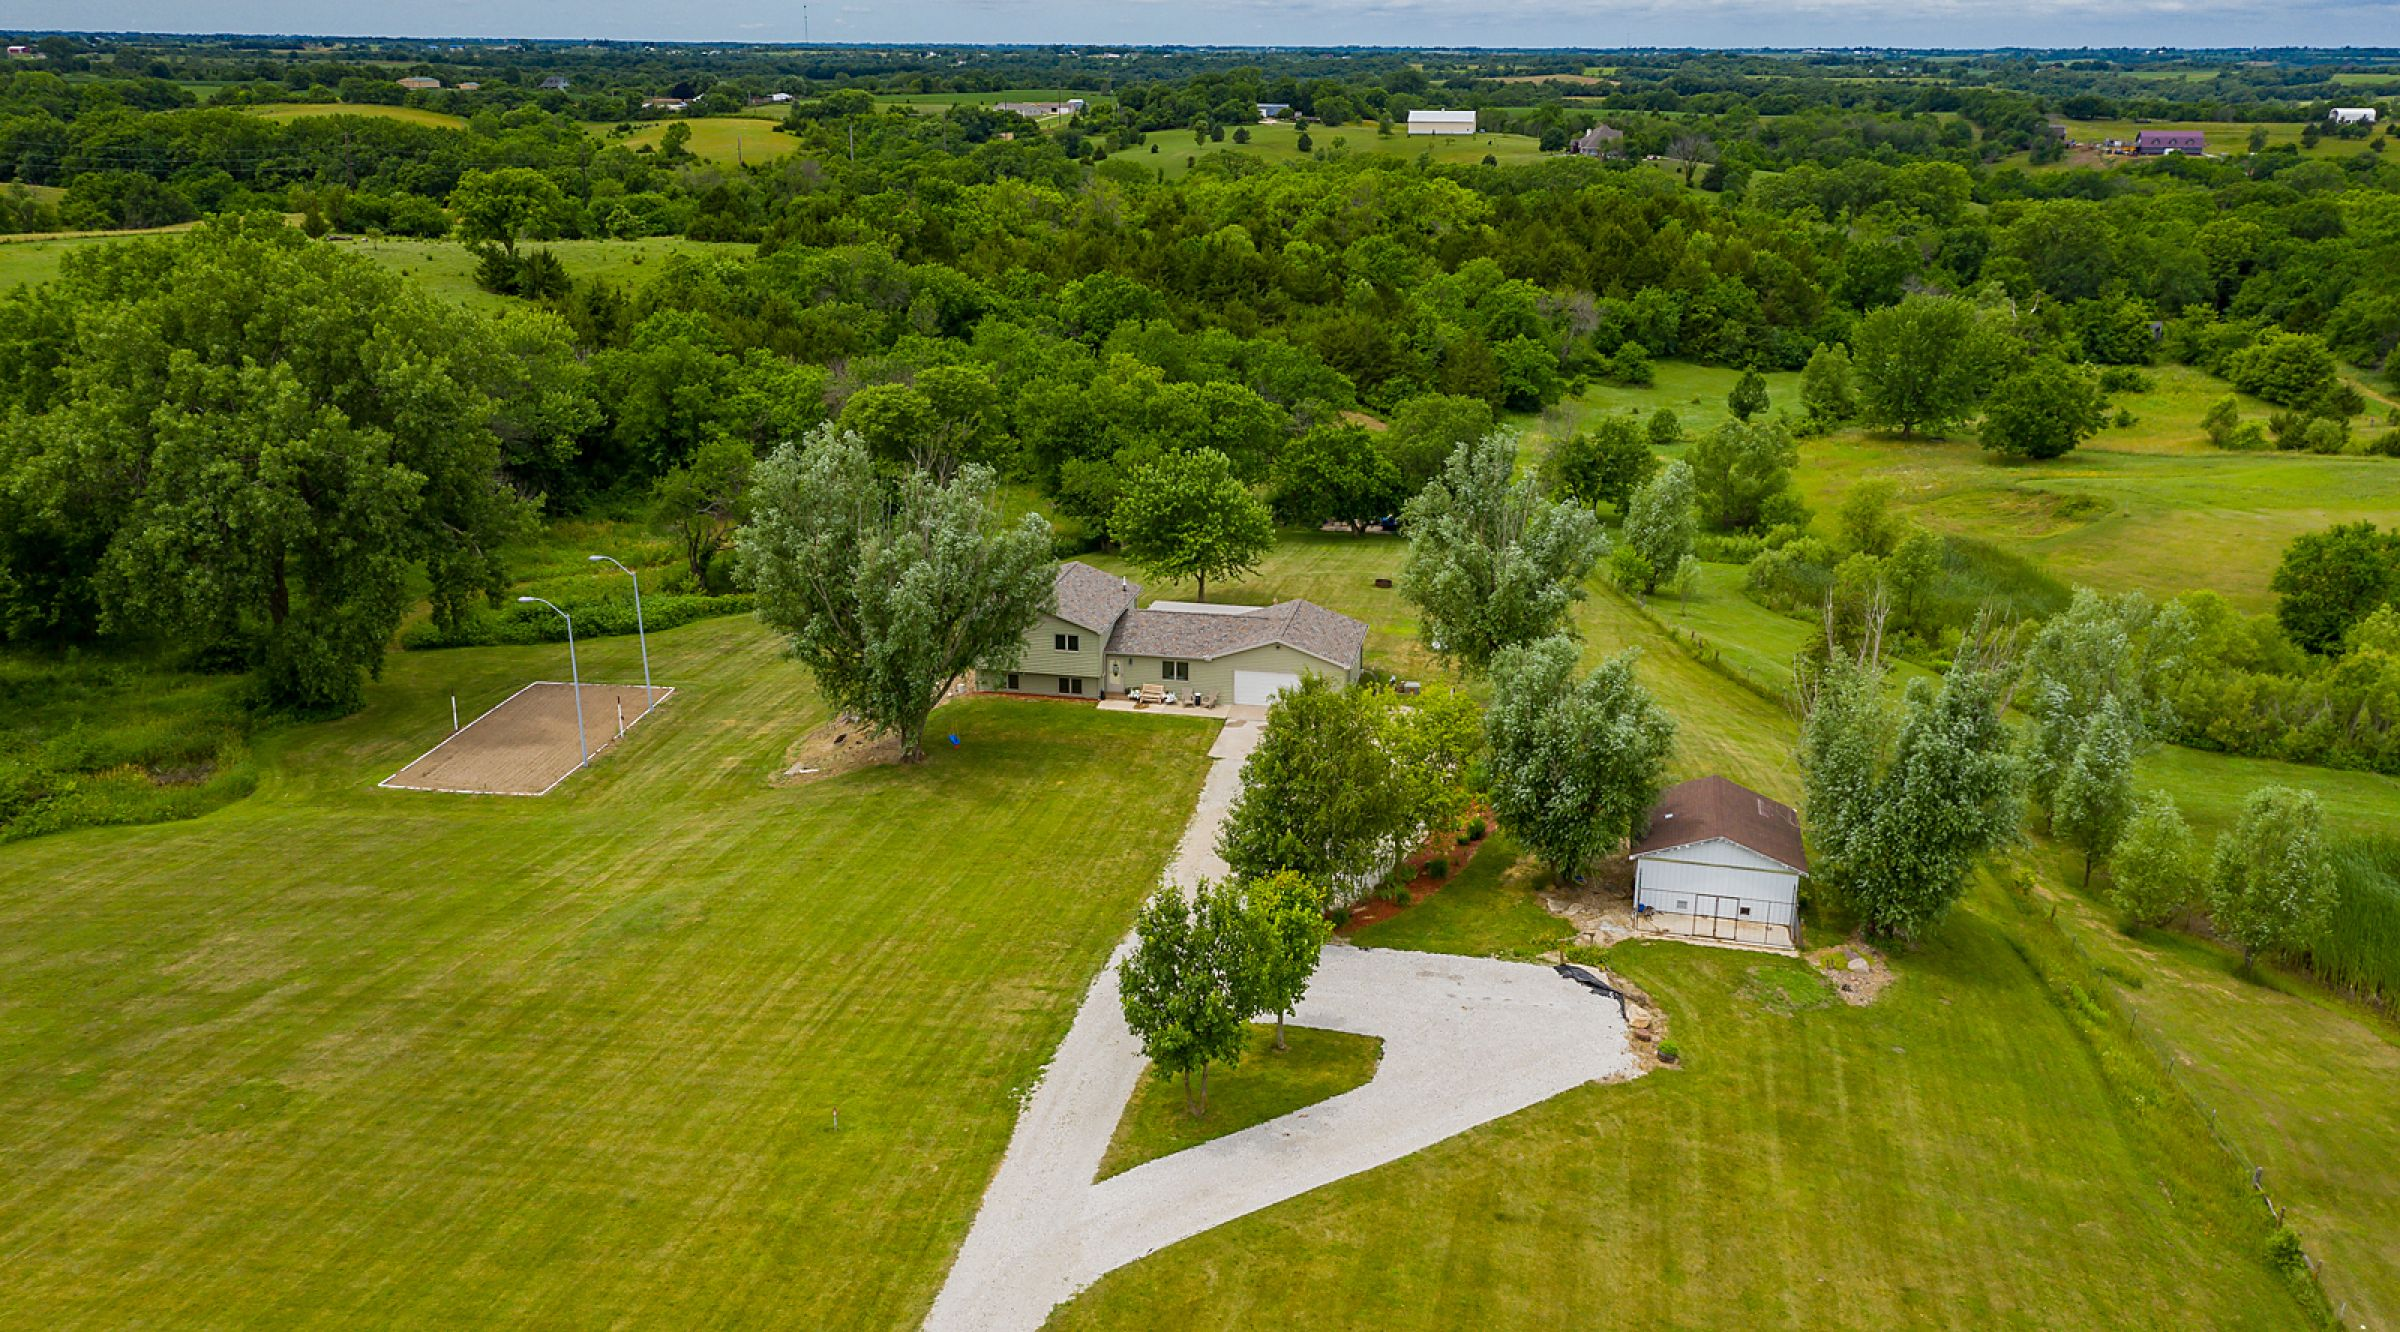 residential-warren-county-iowa-13-acres-listing-number-15056-7-2020-07-02-015920.jpg